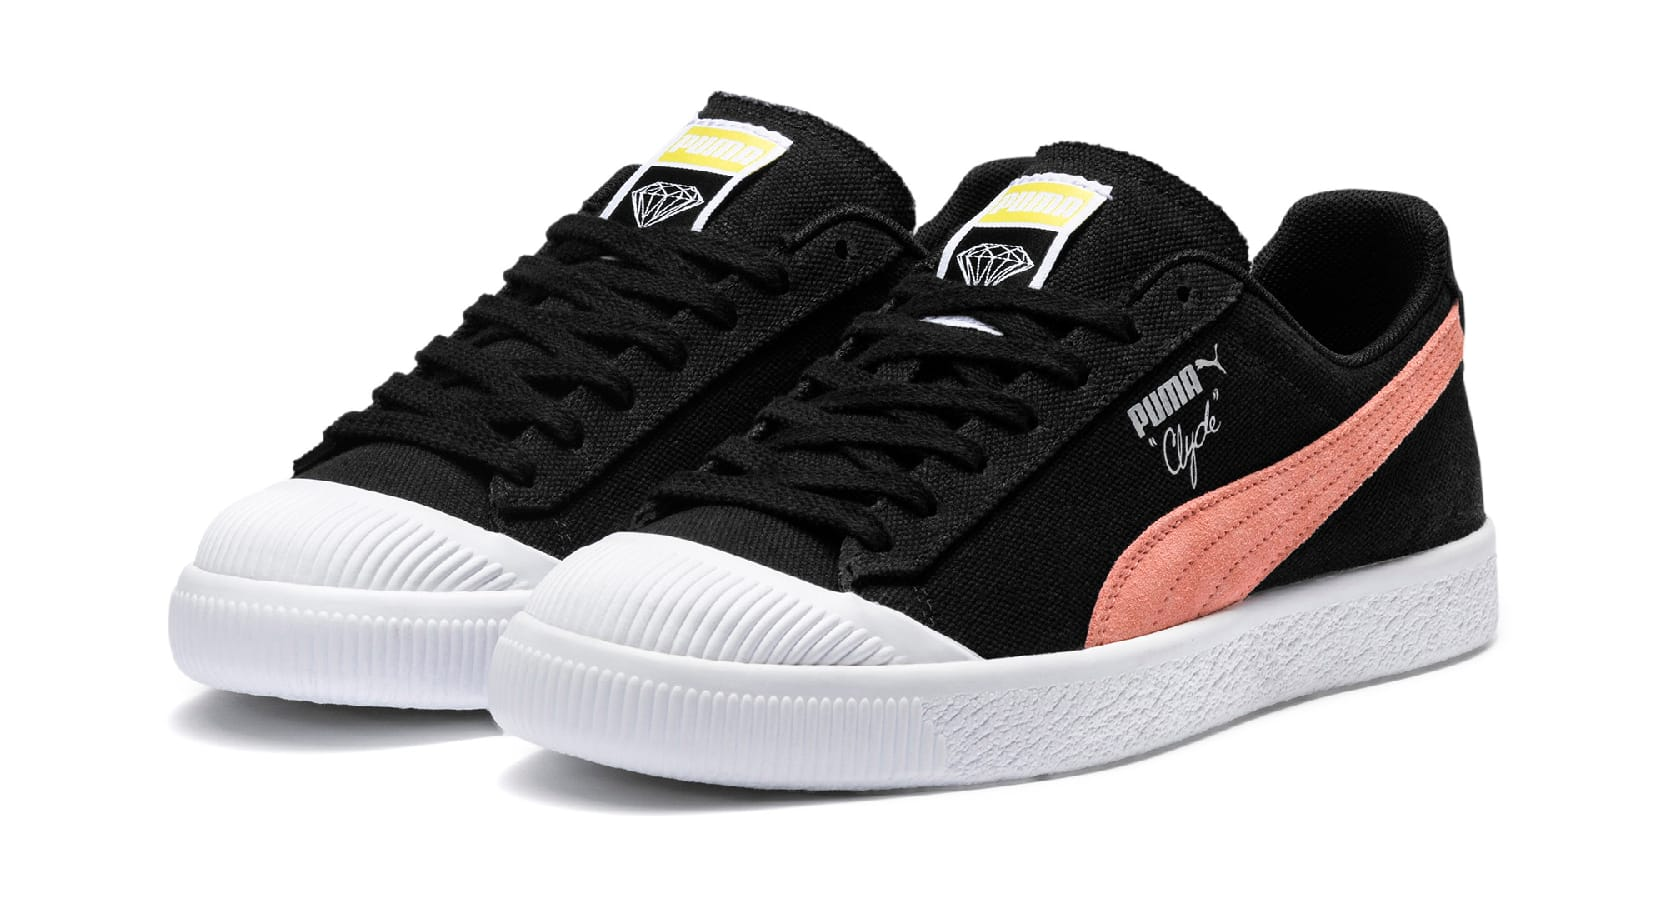 Diamond Supply Co. x Puma Clyde 369397 (Pair)